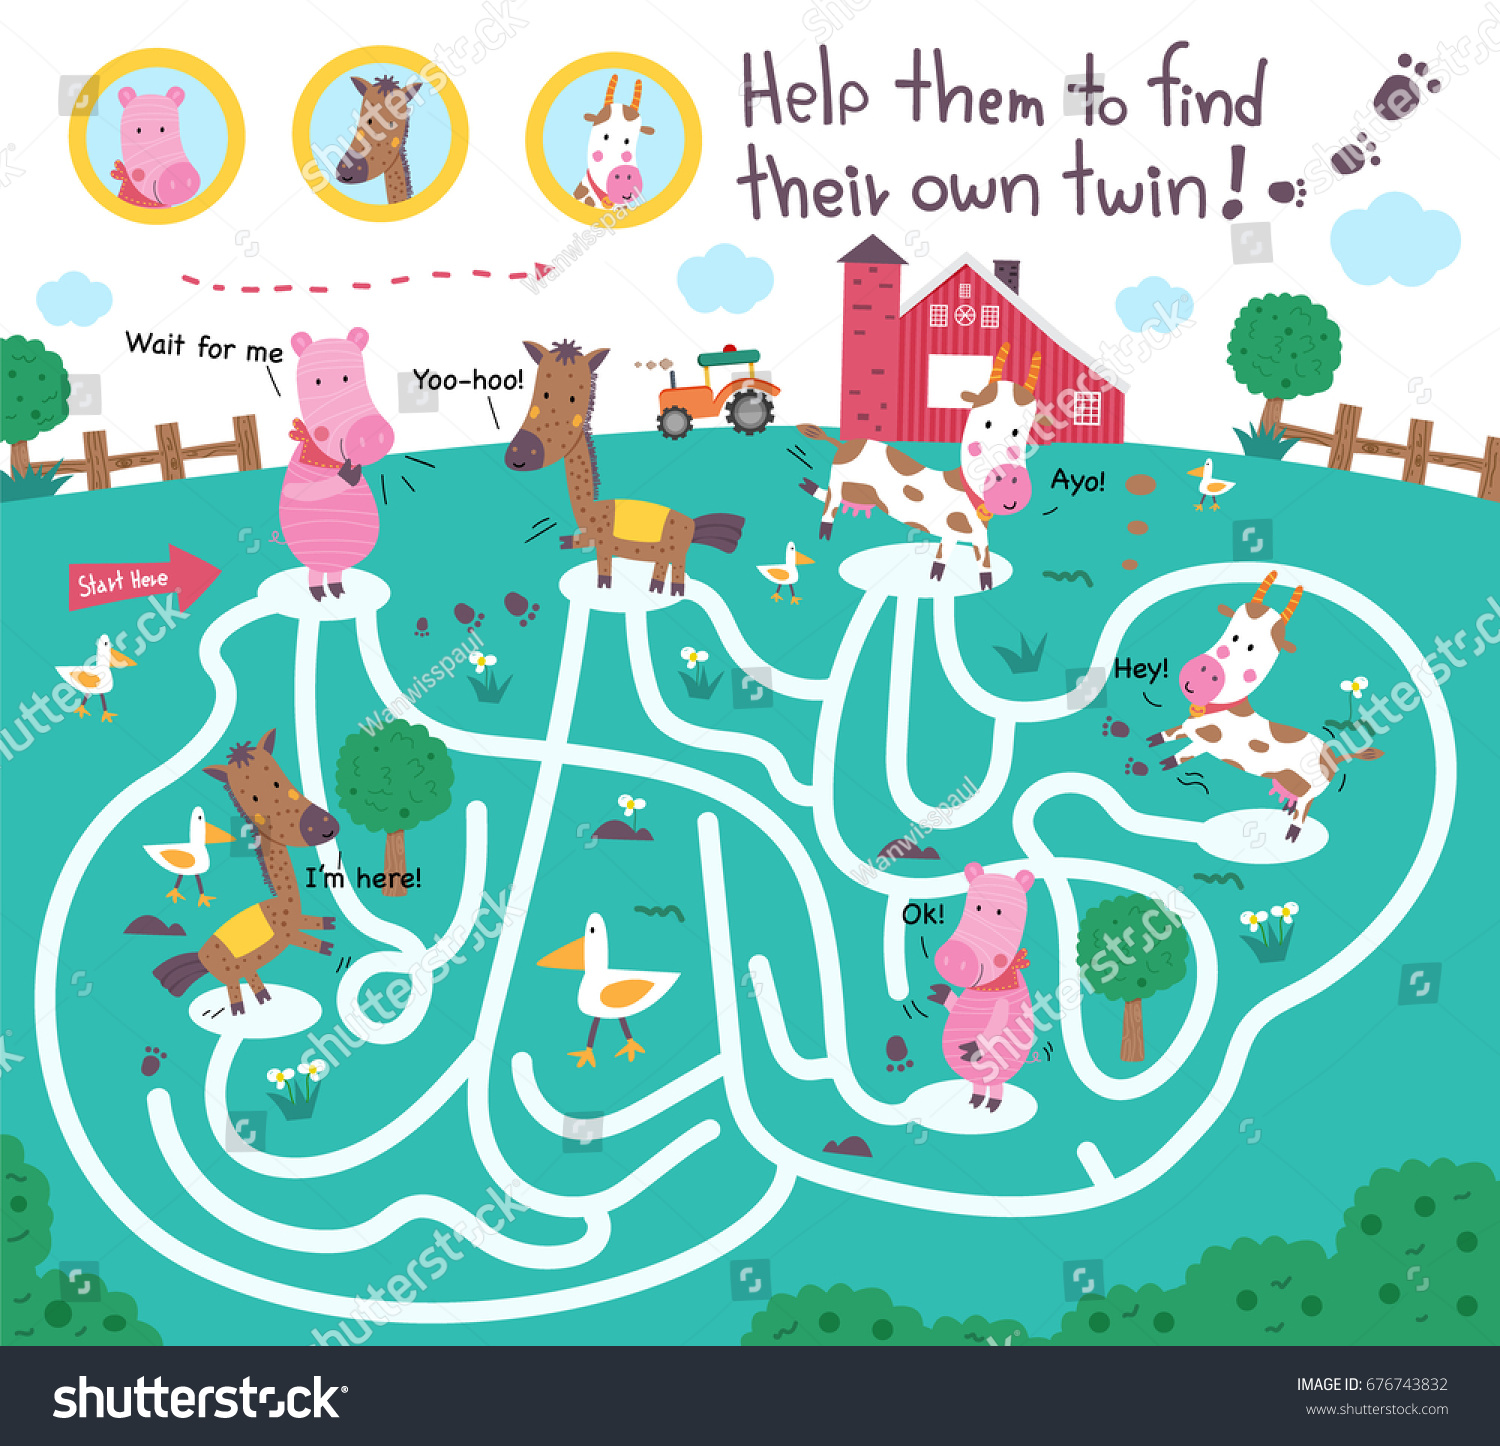 Funny Maze Puzzle Kids Help Them Stock Vector (Royalty Free ...